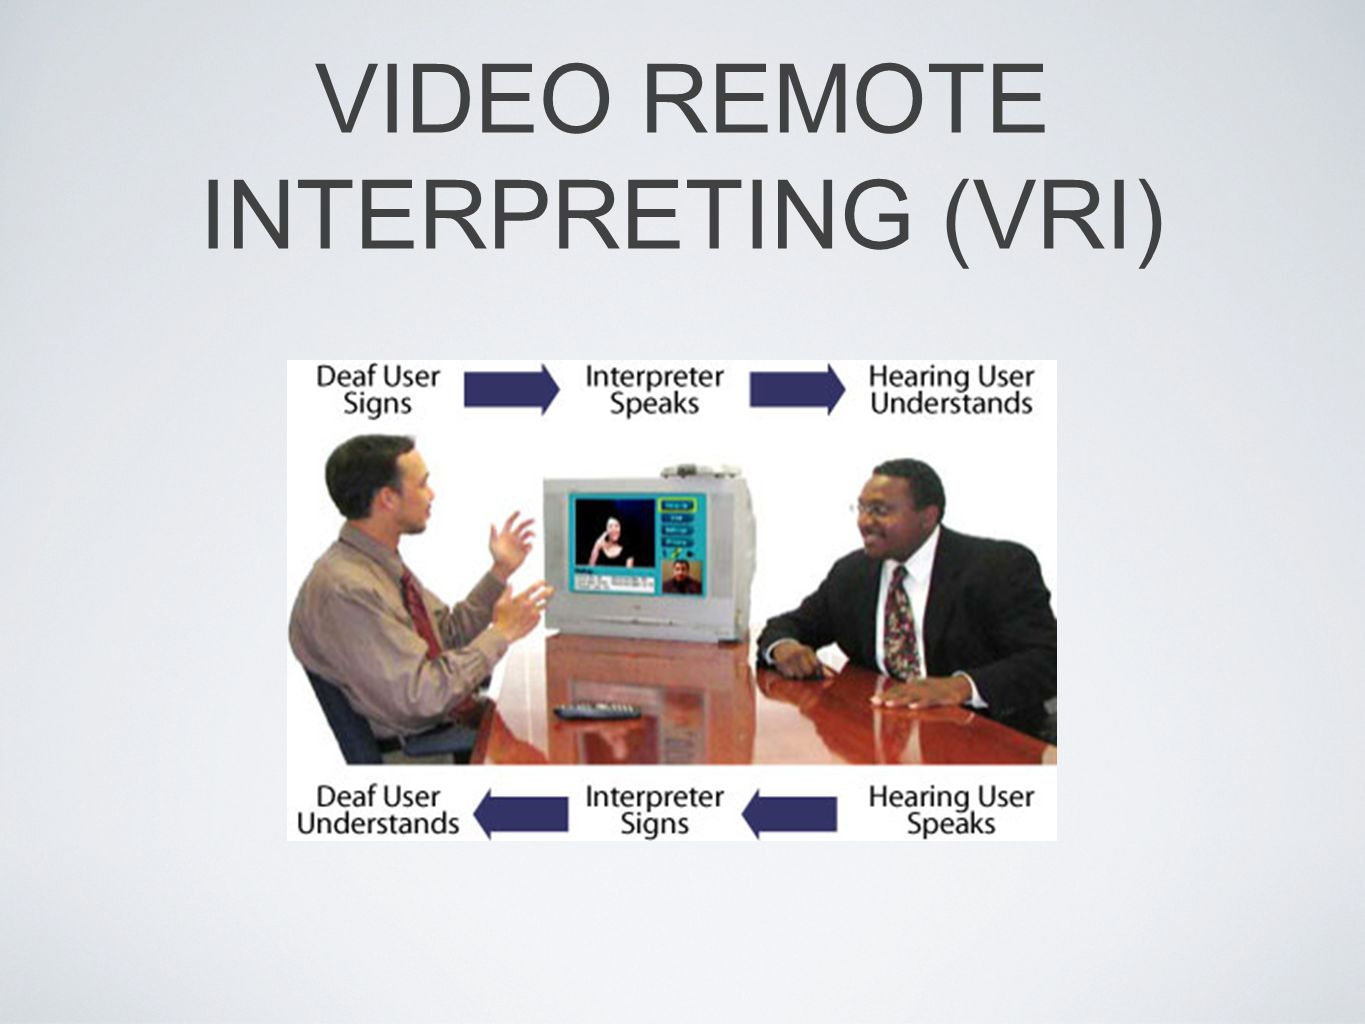 VIDEO REMOTE INTERPRETING (VRI)